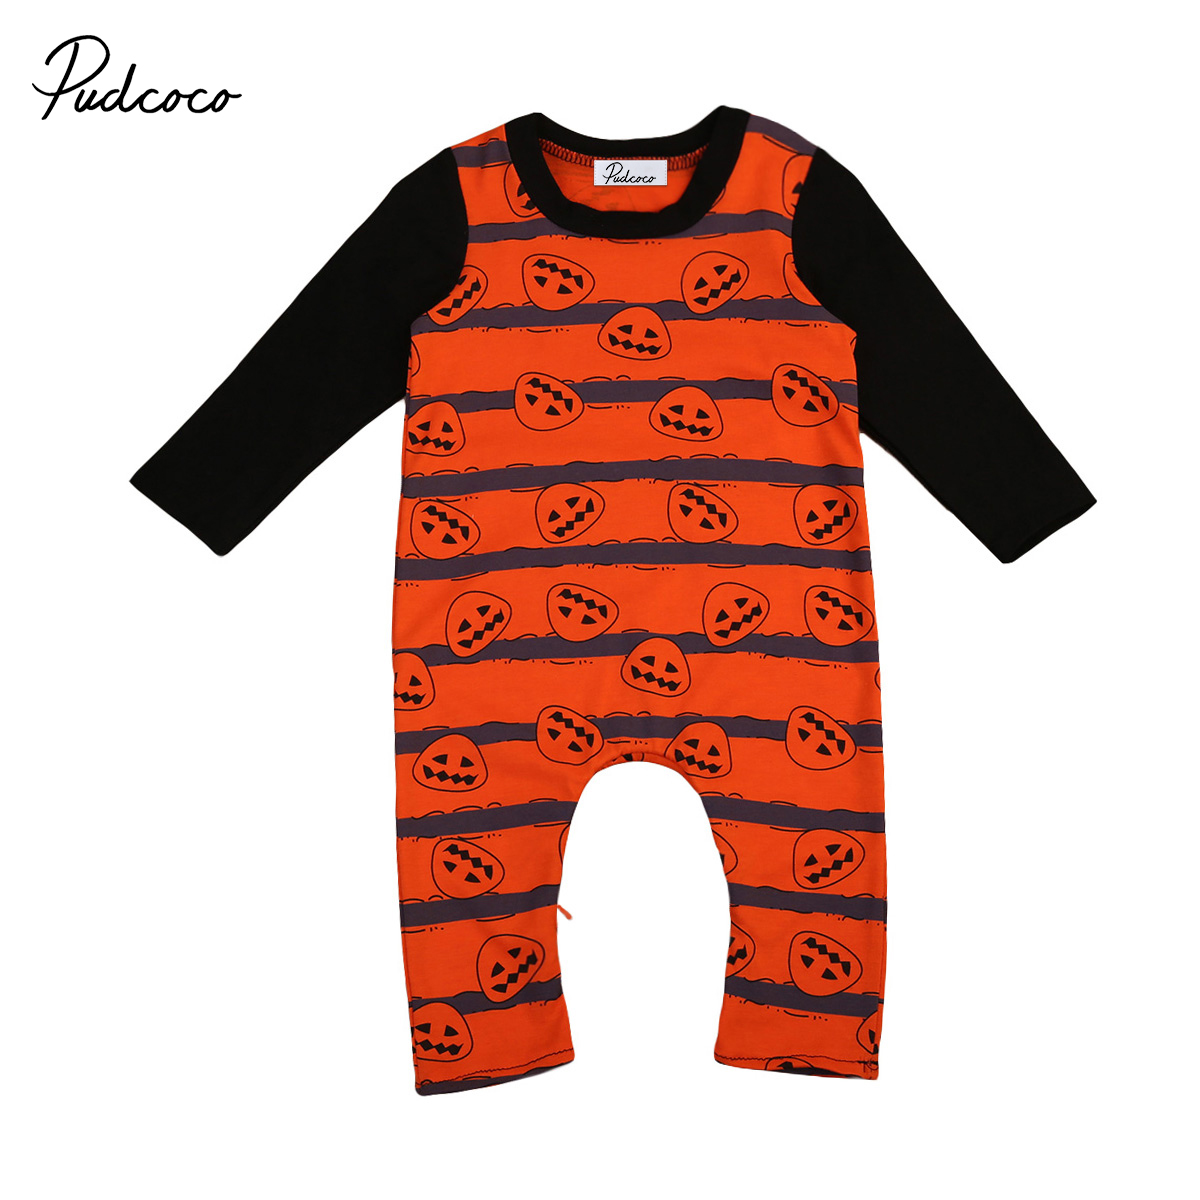 Pudcoco Baby Boys Girls Halloween Pumpkin Long Sleeve Splice Romper Playsuit Clothes Outfits Set